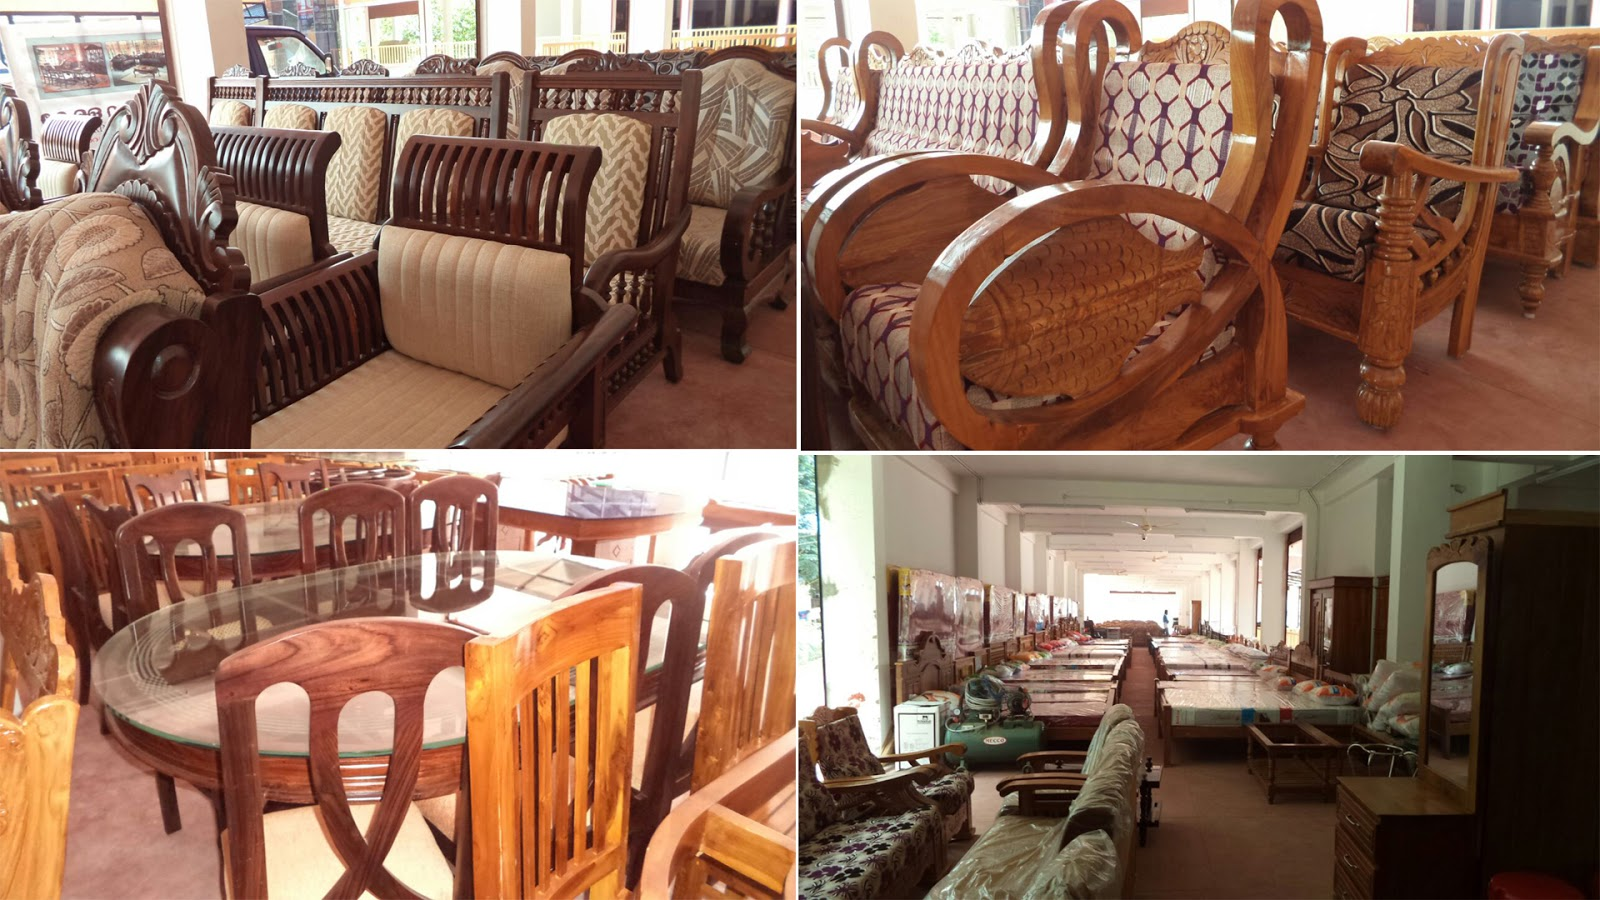 KERALA WOOD FURNITURE September 2015